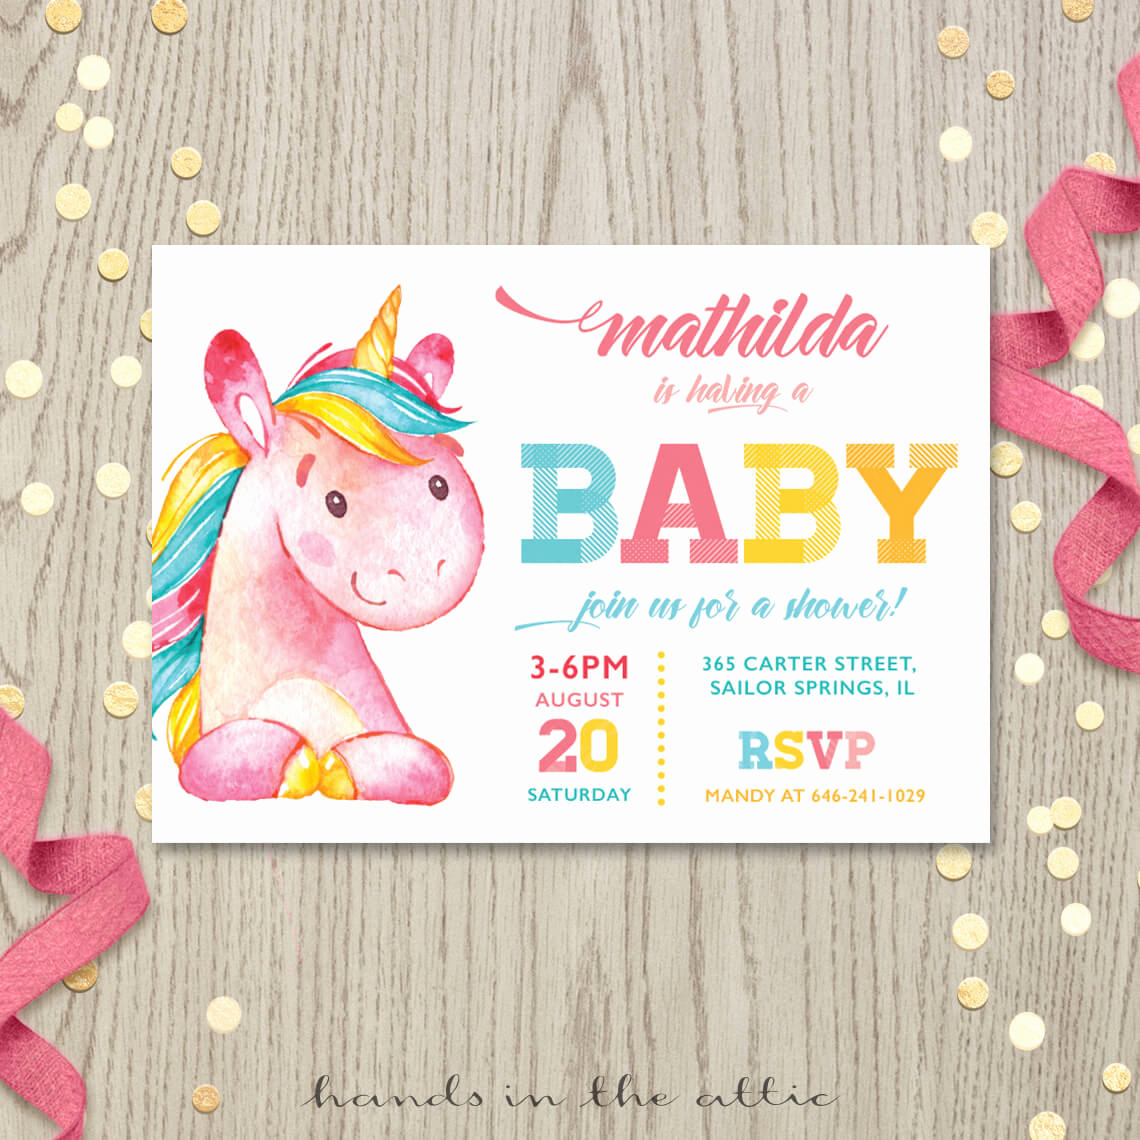 Baby Shower Invitation Pictures Unique Pink Unicorn Baby Shower Invitation